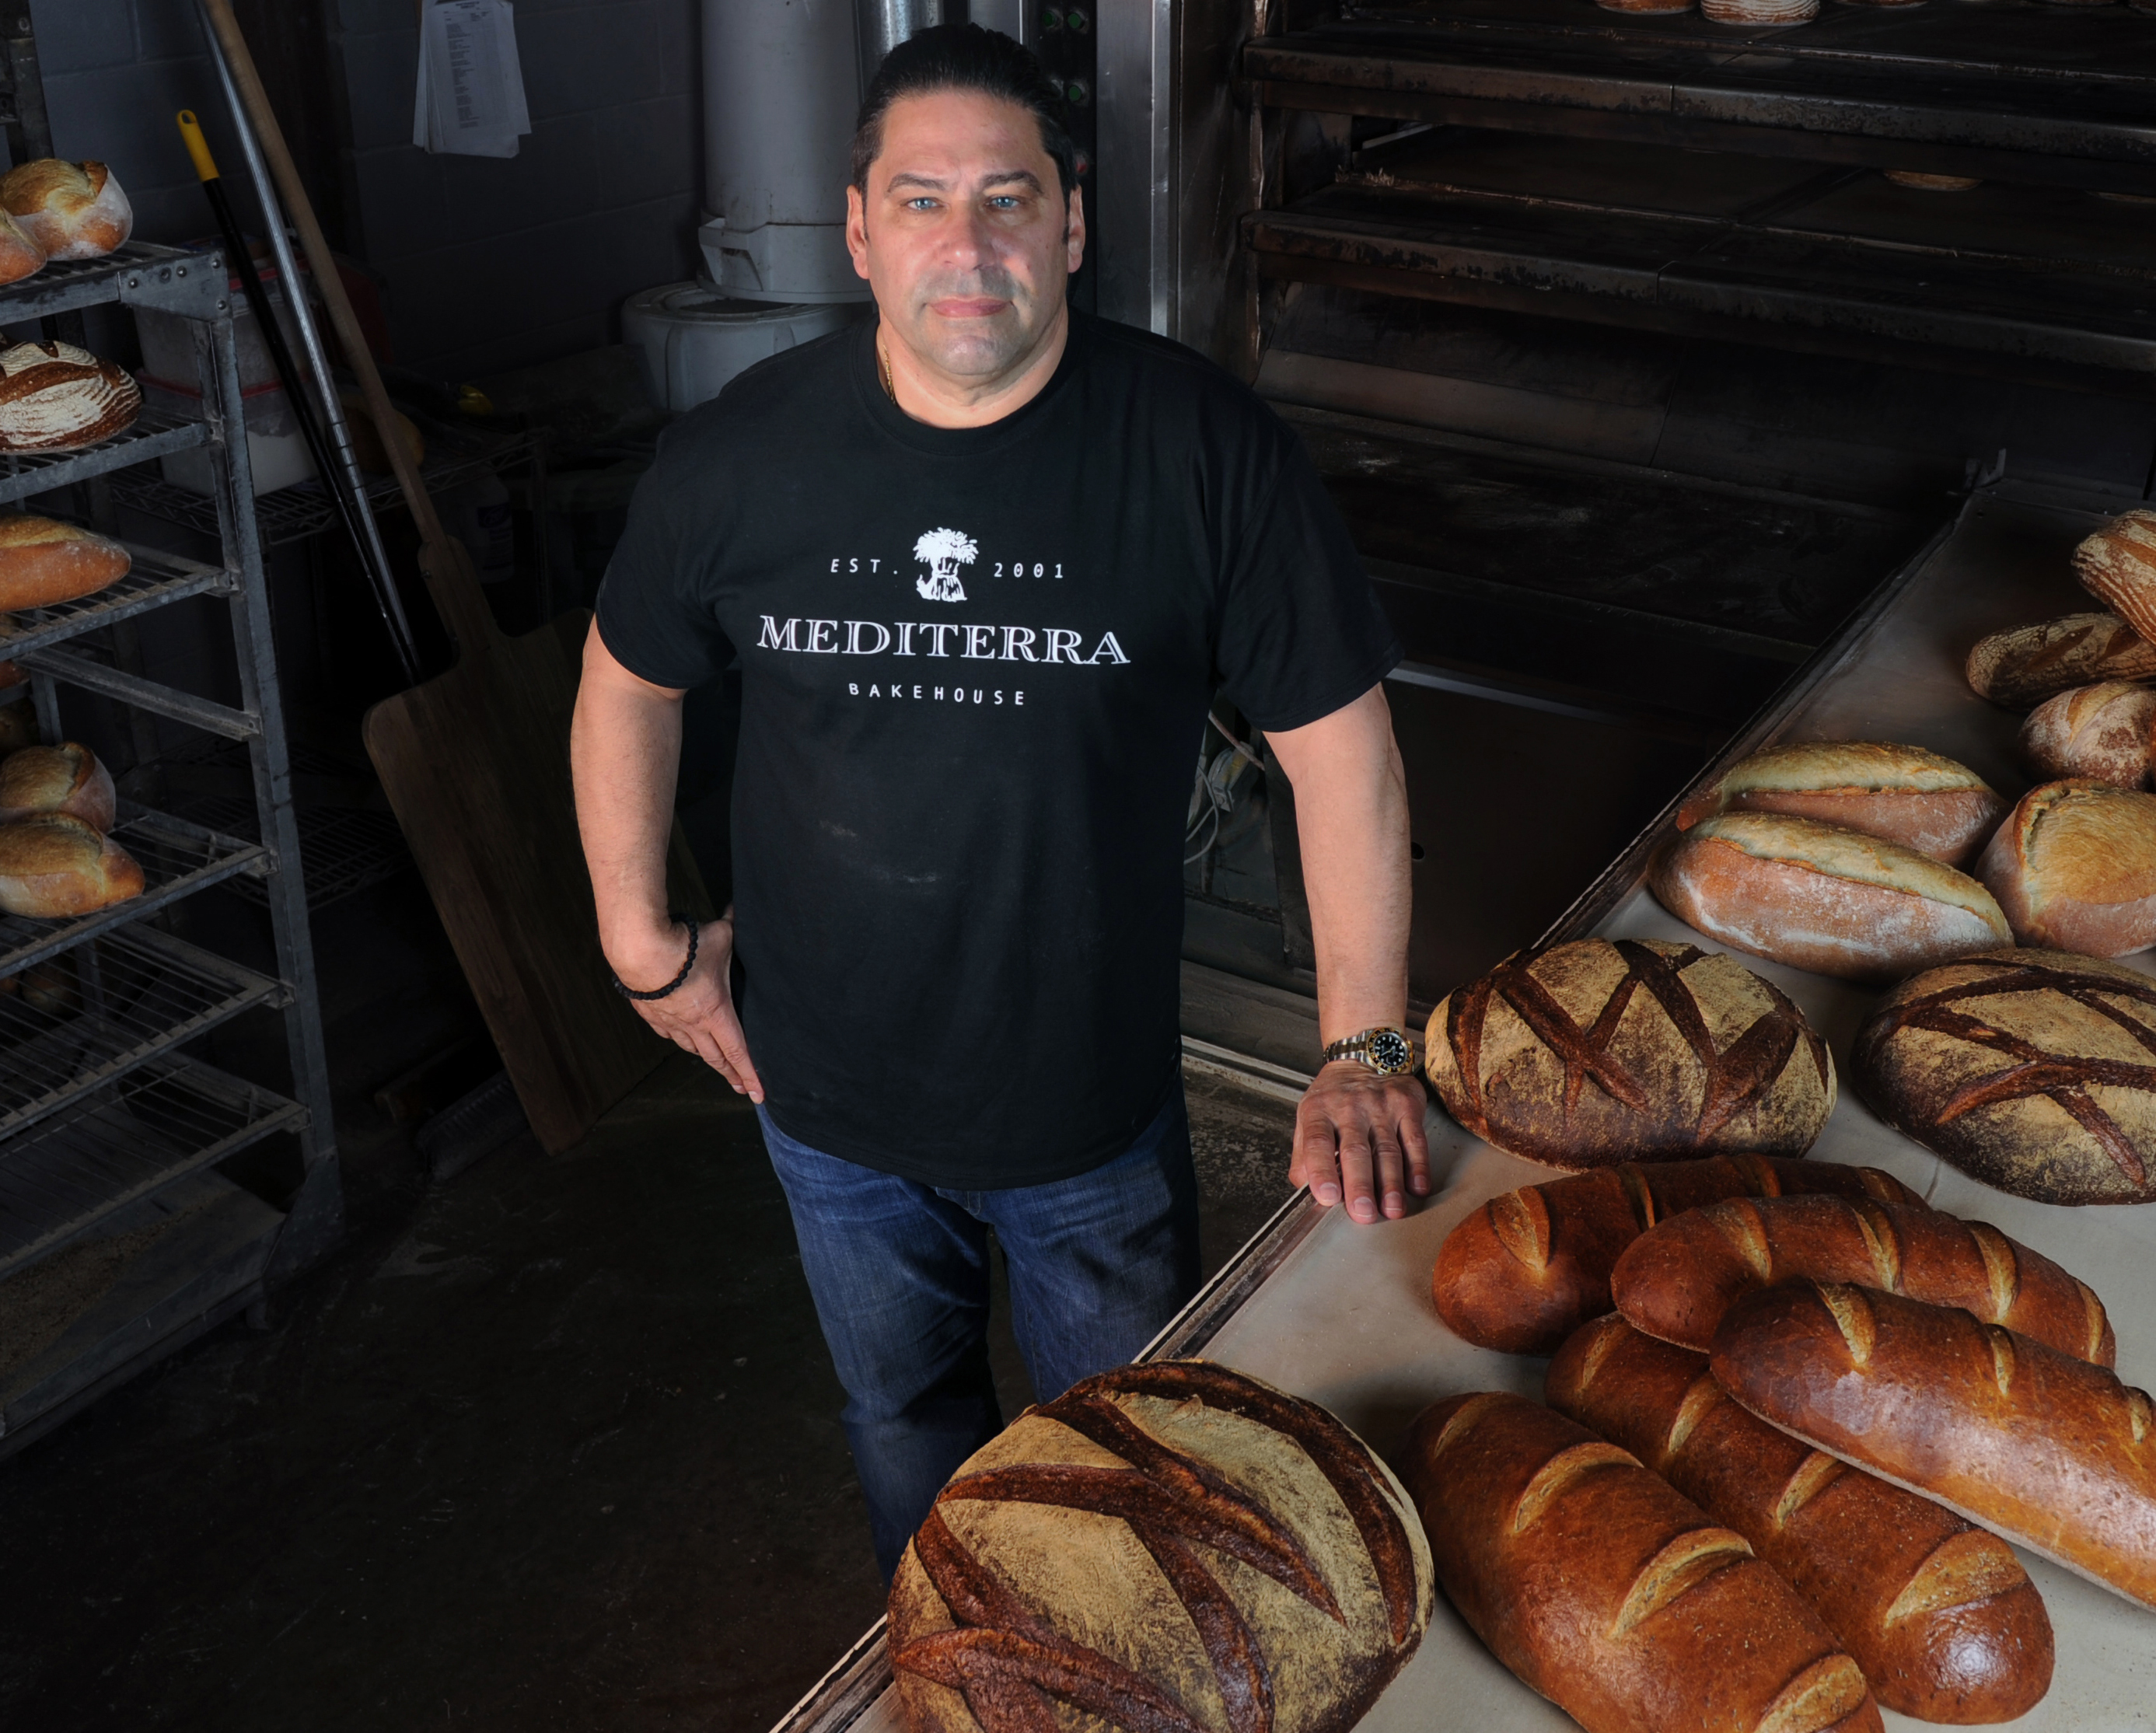 20170601ng-MediterraBread1  Nate Guidry/Post-Gazette. 20170601. For Food section. Reporter Gretchen McKay. Nick Ambeliotis, owner of Mediterra Bakehouse in Robinson, poses for a portrait June 1, 2017.